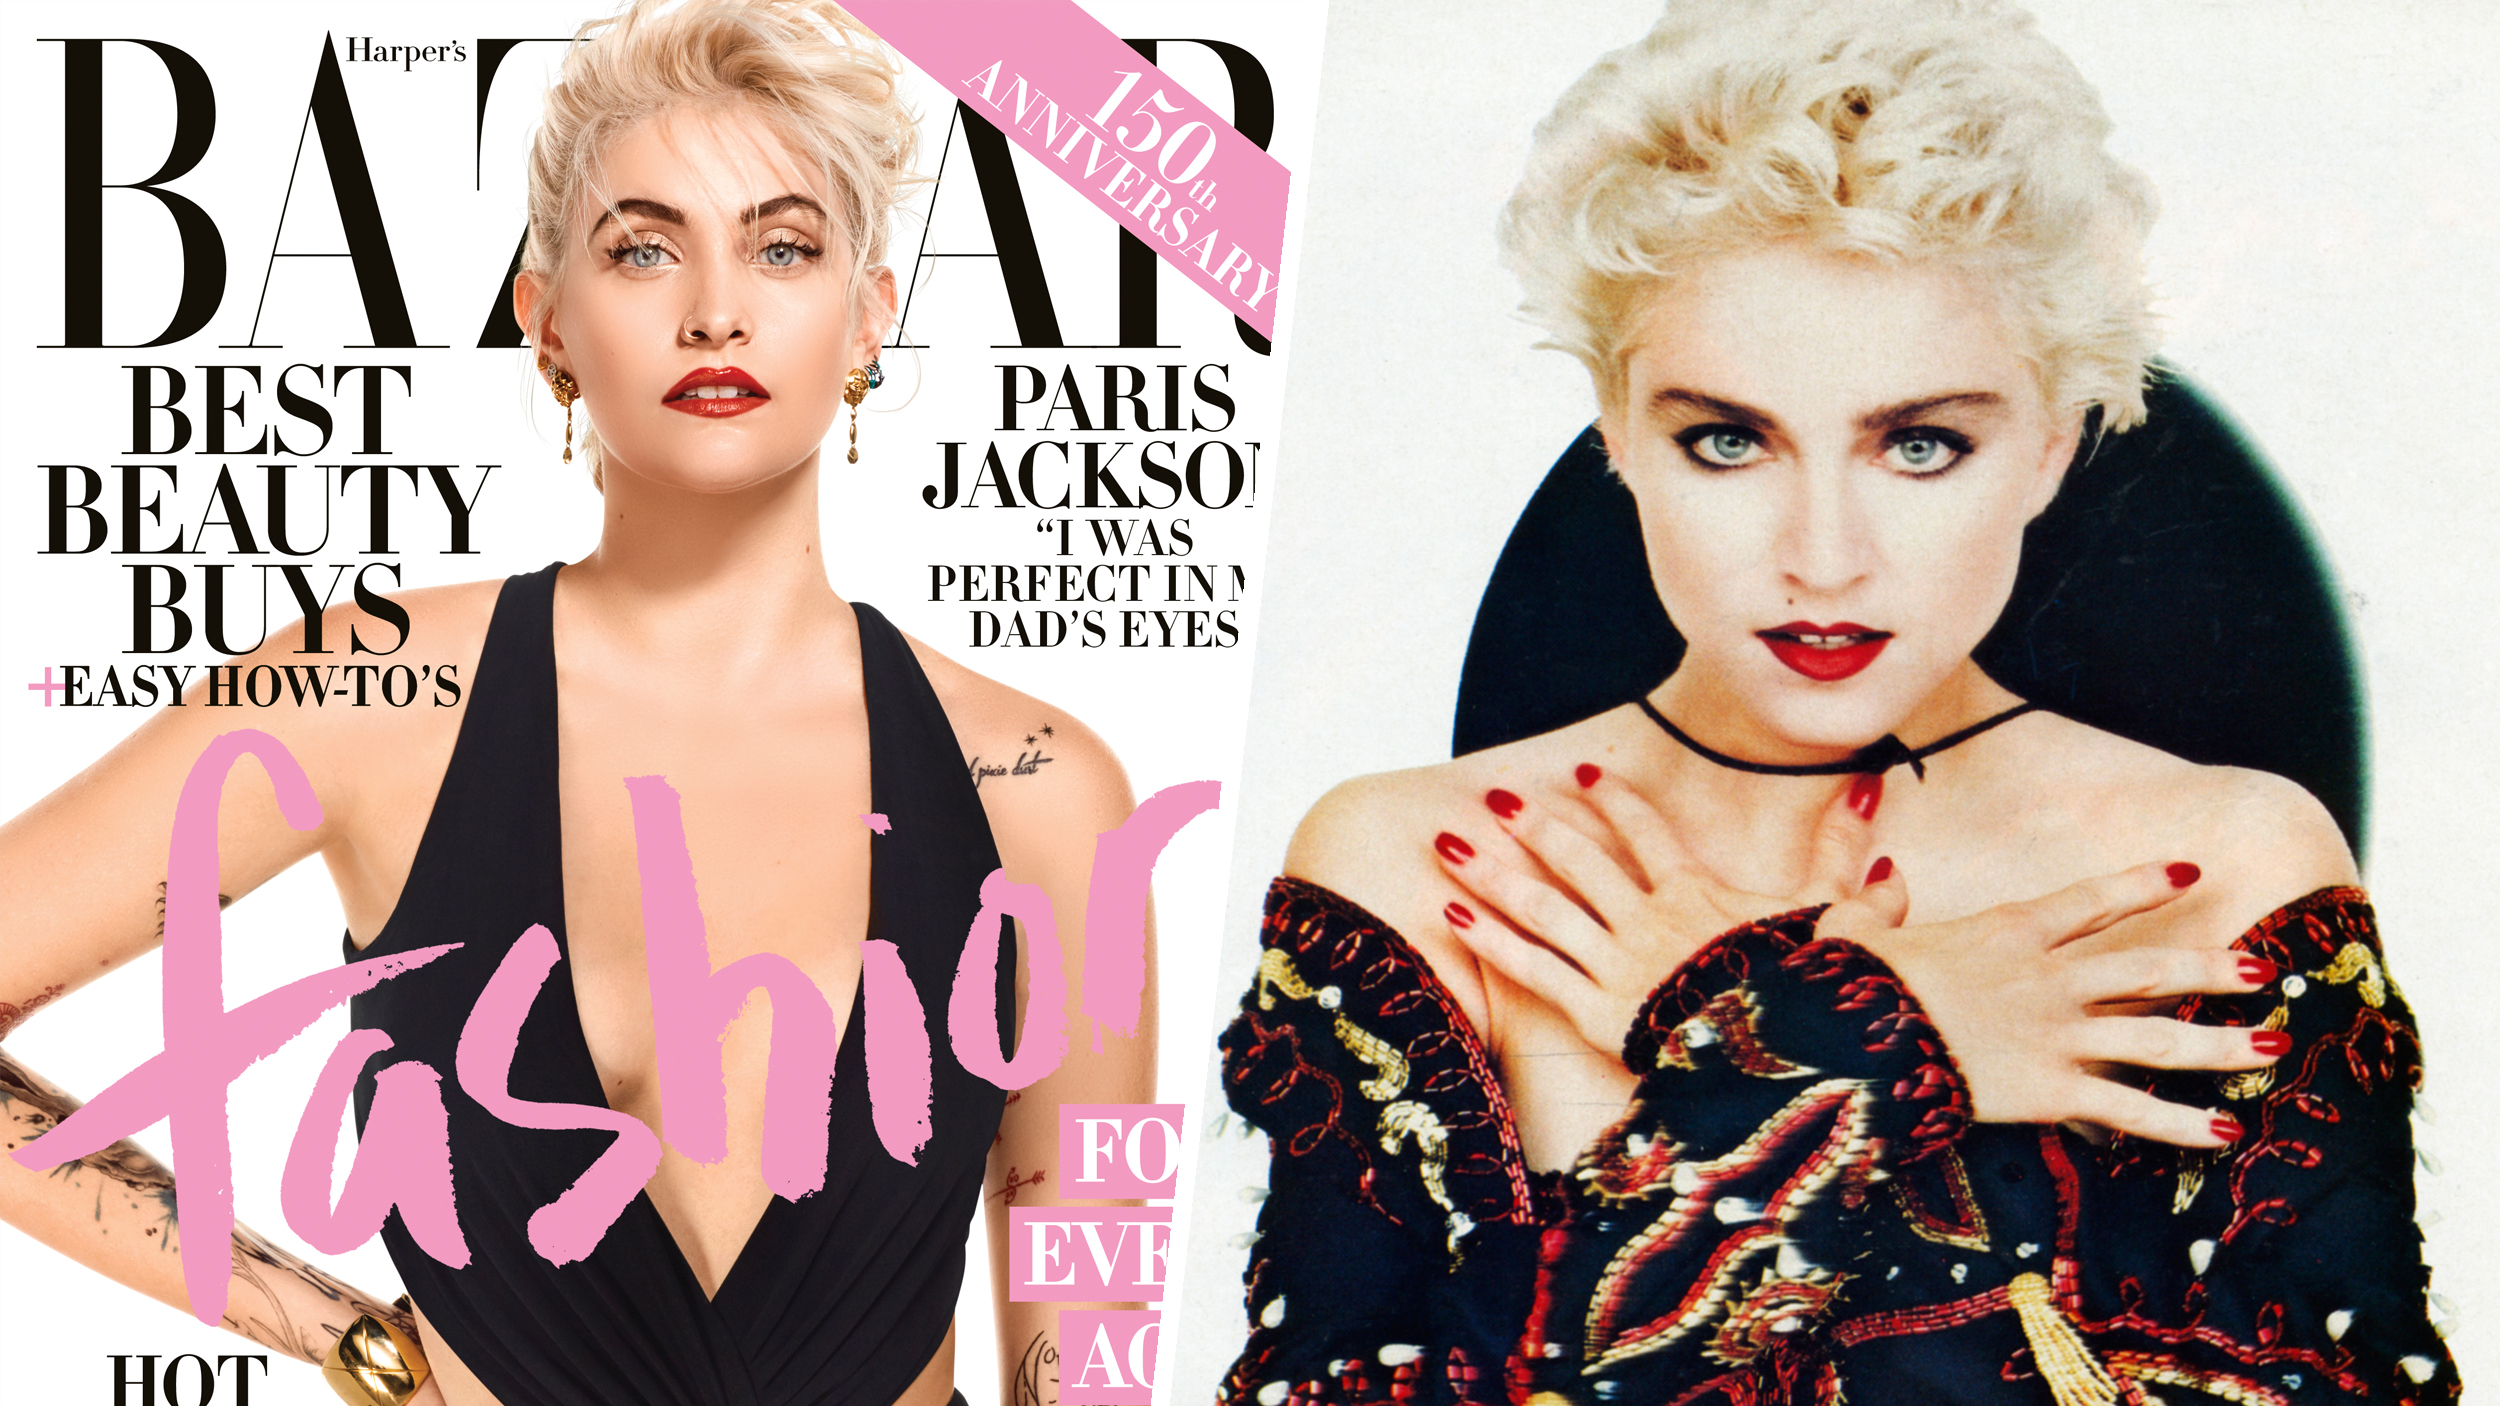 paris-jackson-harpers-bazaar-today-17031